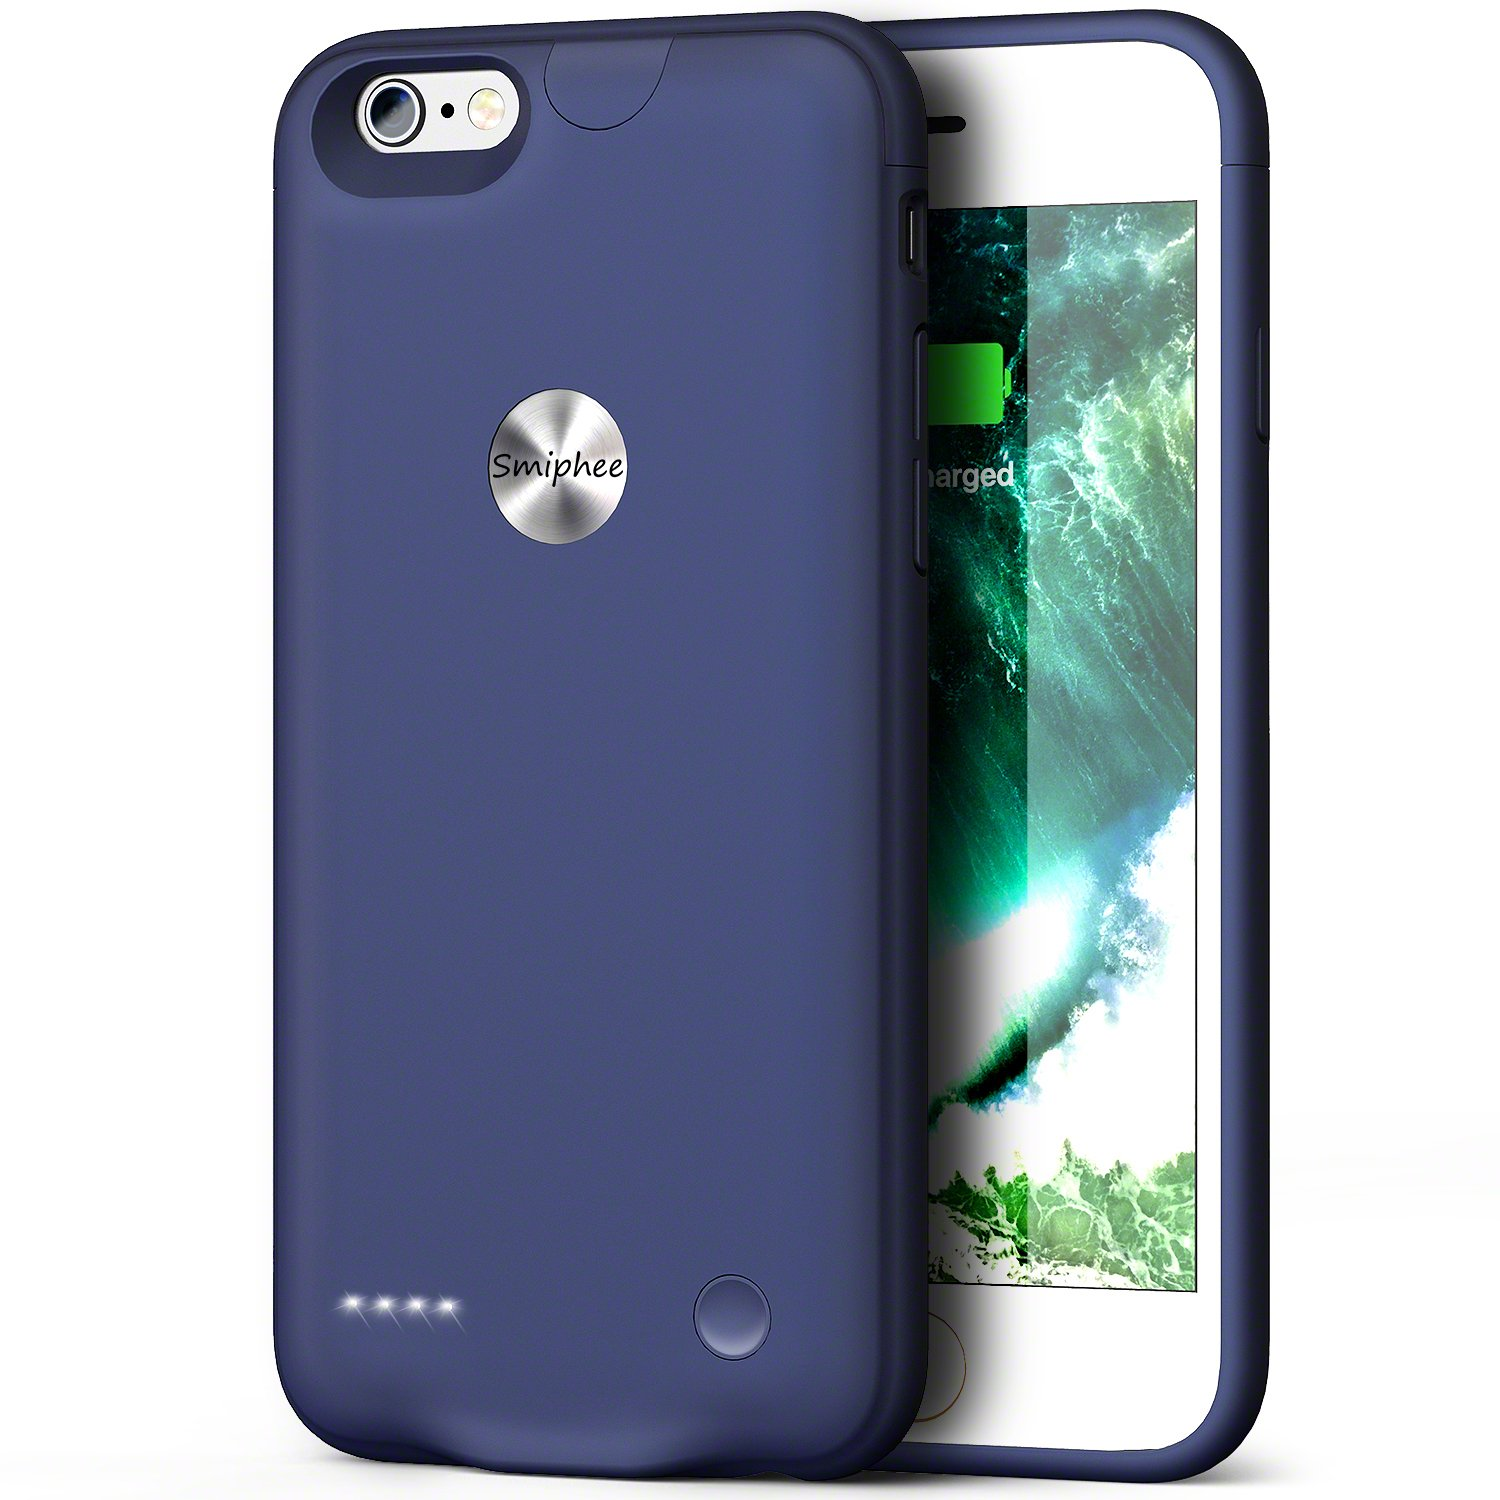 iPhone 6 6s Battery Case, Smiphee 2500mAh Portable Charging Case iPhone 6 6s(4.7 inch) Extended Charger Case ( Blue ) ZZ-BC-002